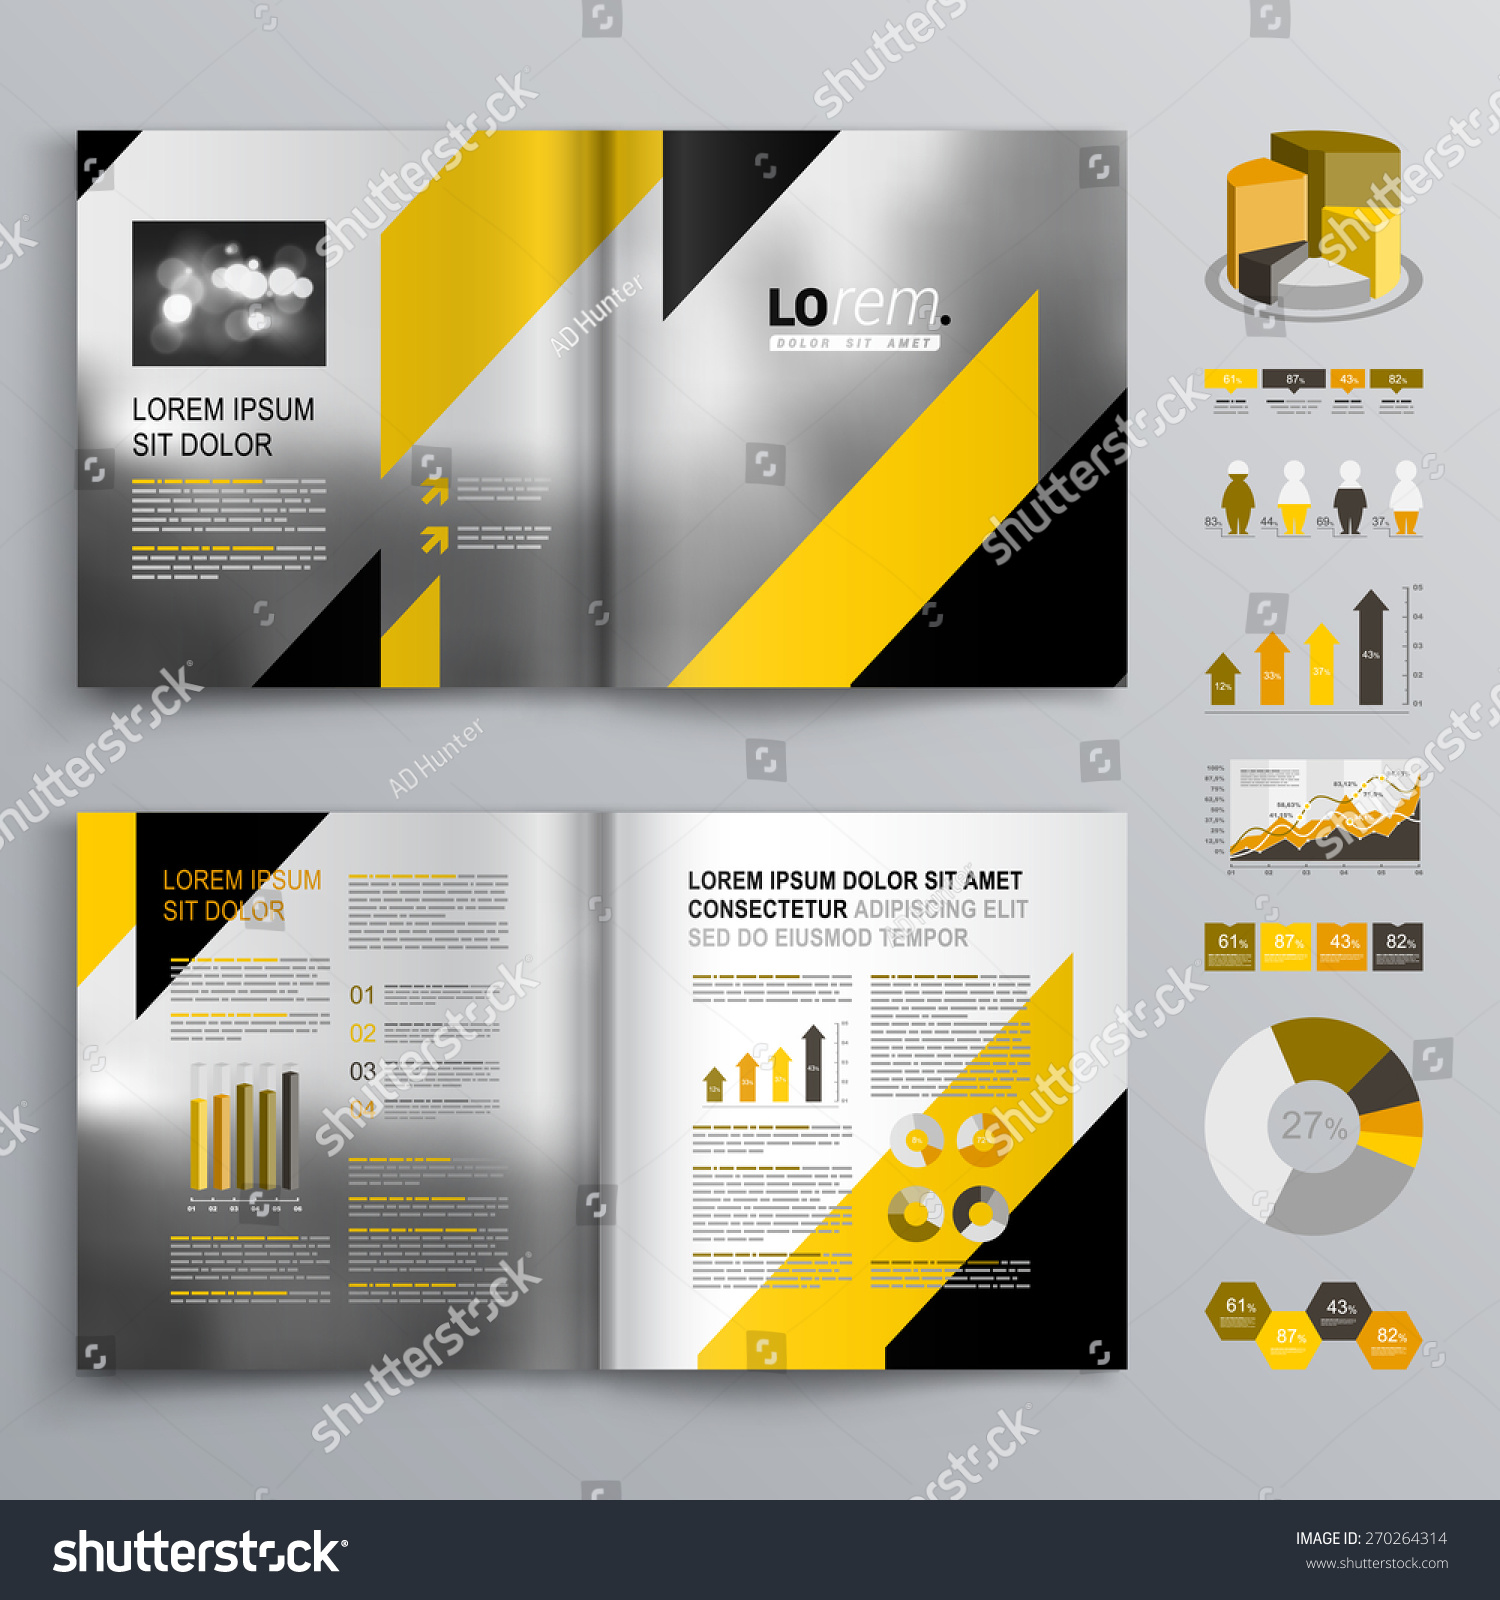 classic gray brochure template design with black and